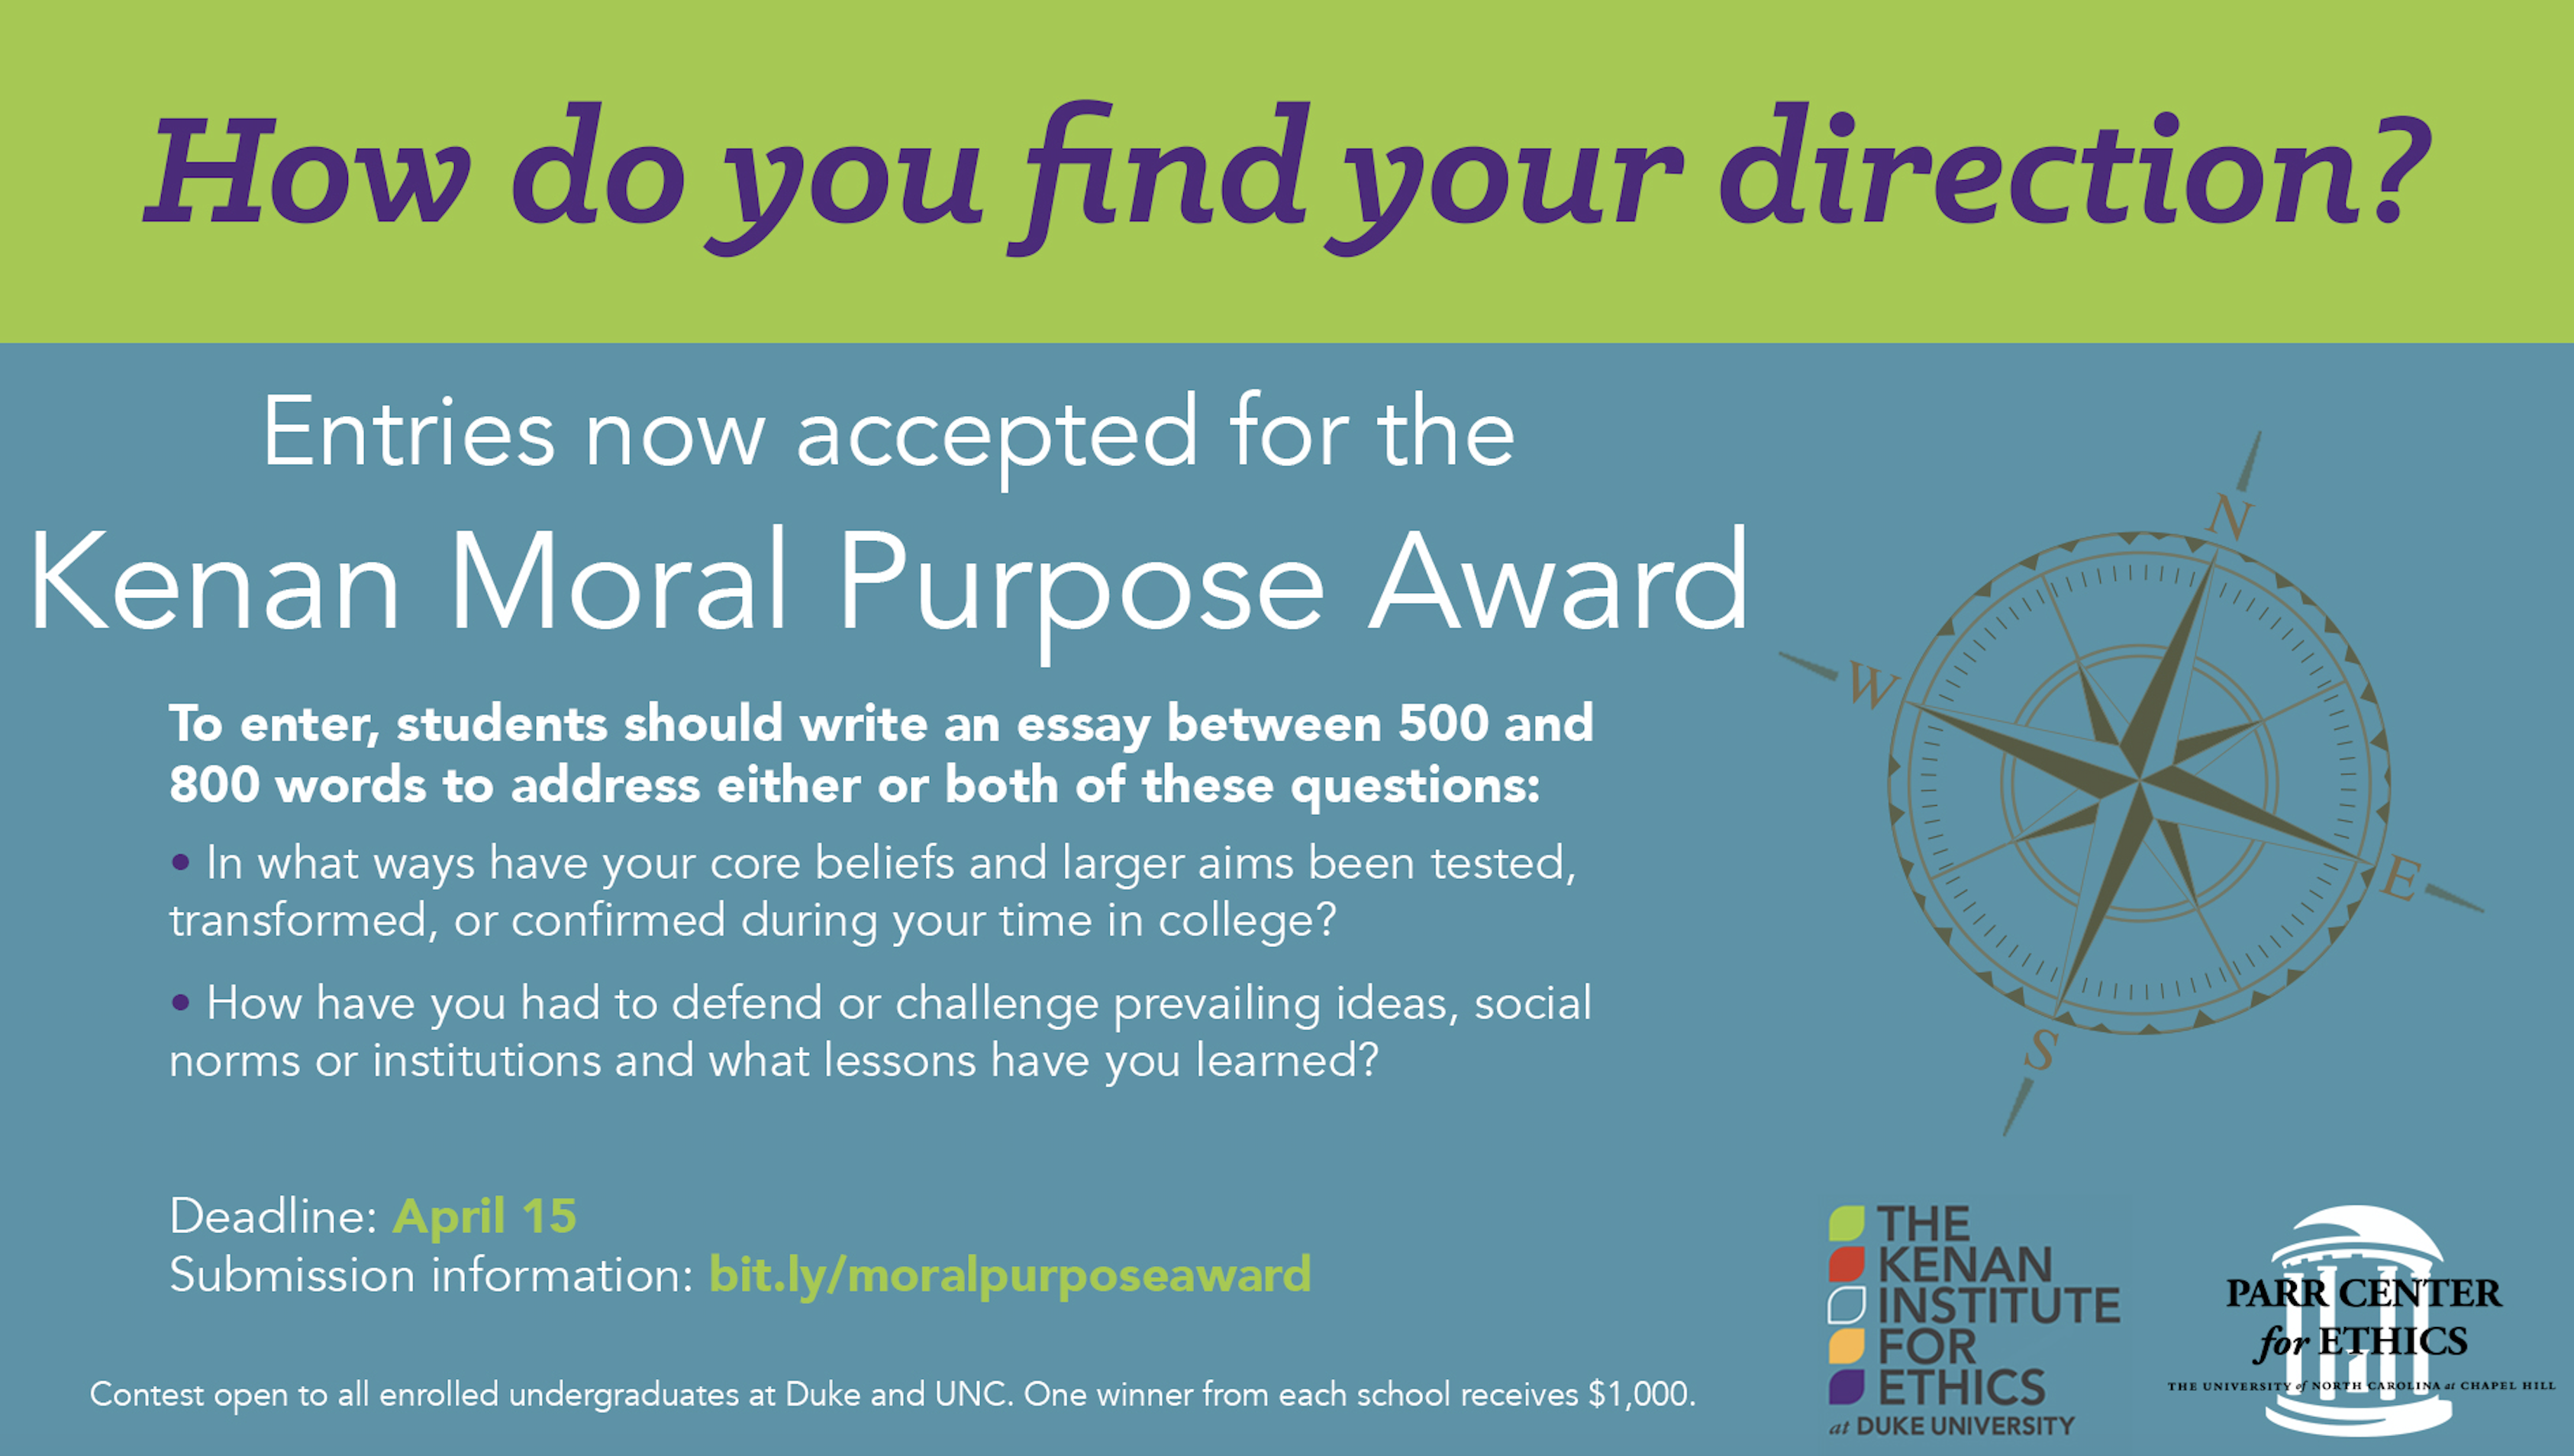 undergraduates enter kenan moral purpose award essay contest screen shot 2017 03 23 at 2 53 44 pm